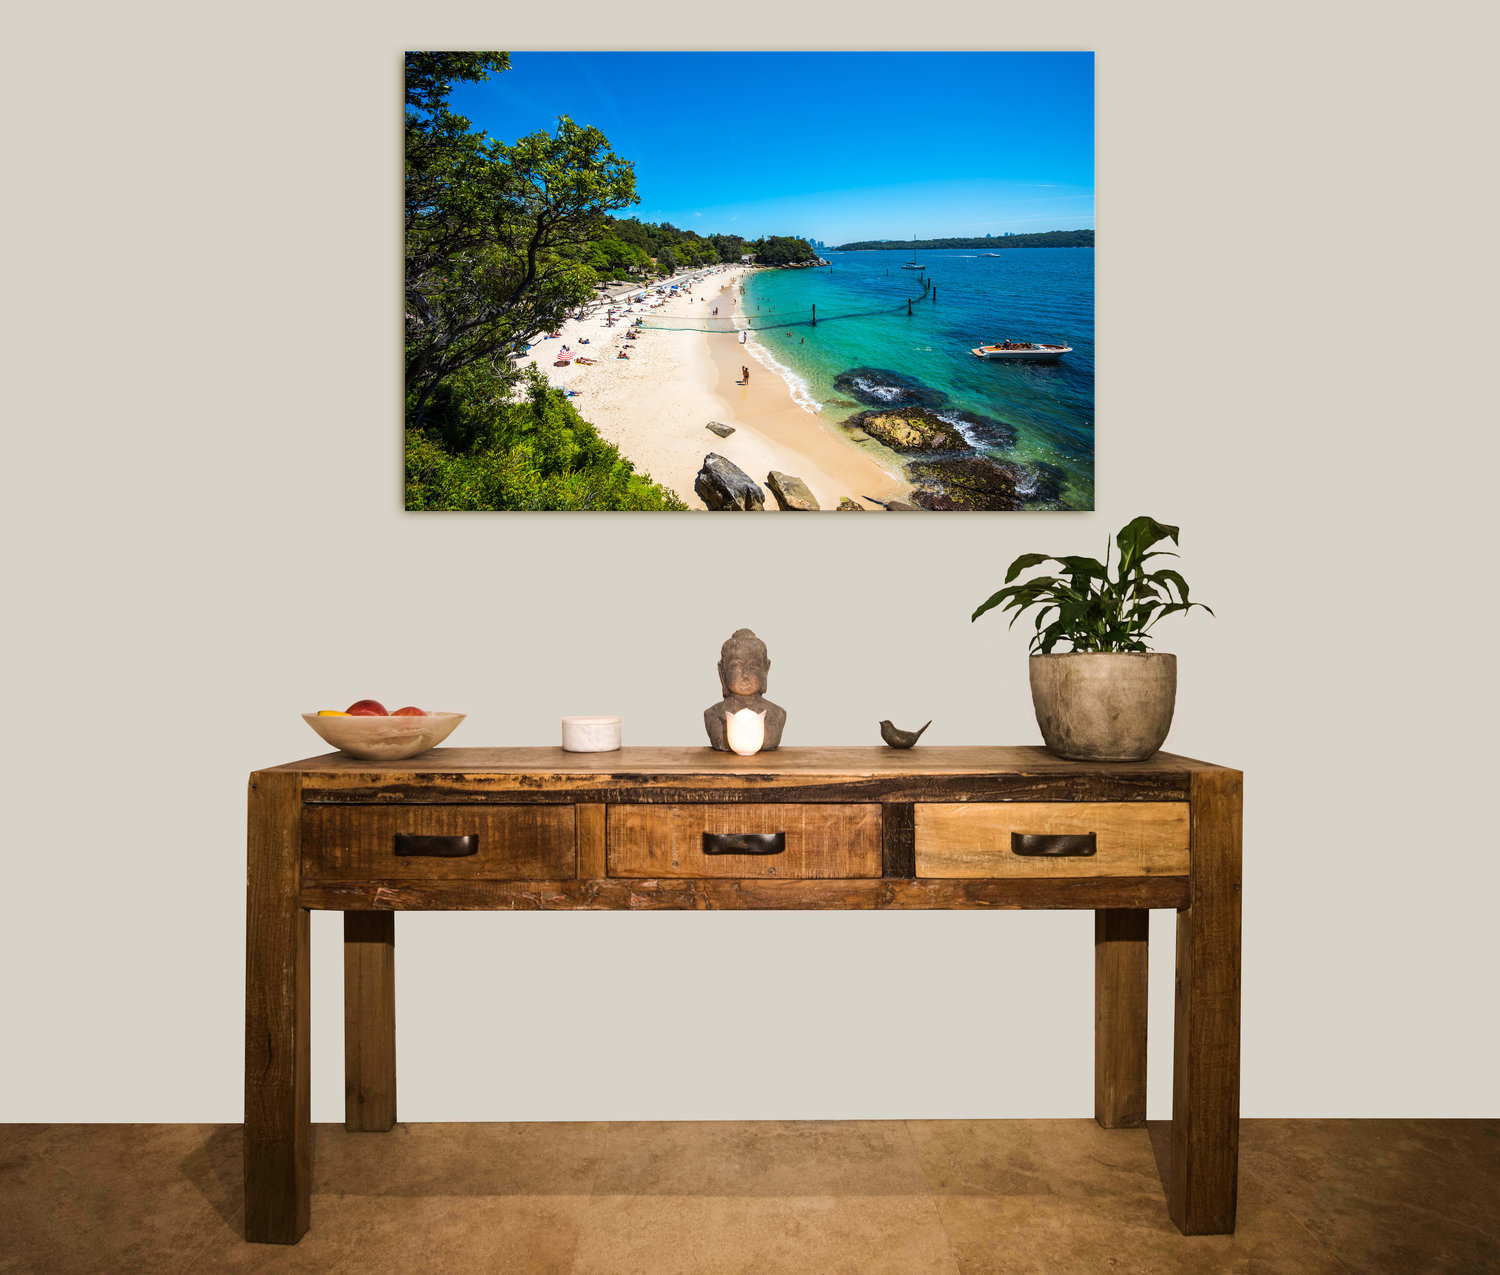 Brighten your home - Sydney Summer photography specialises in stunning glass prints in a range of sizes with a high gloss frameless finish and a concealed wall mounting system.We also deliver free to your home or office,Australia-wide.